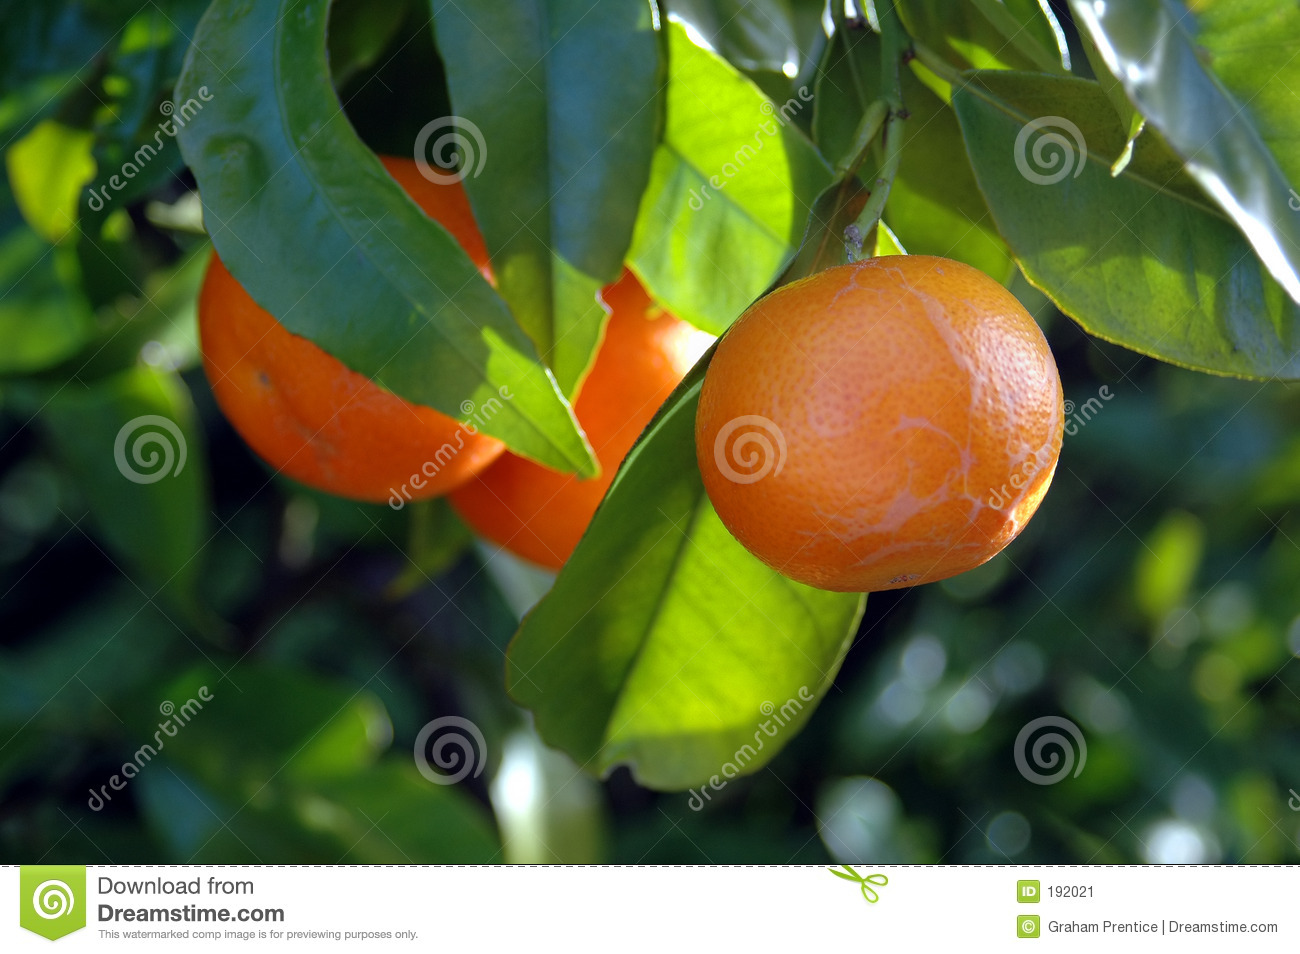 Citrus Fruit on the tree